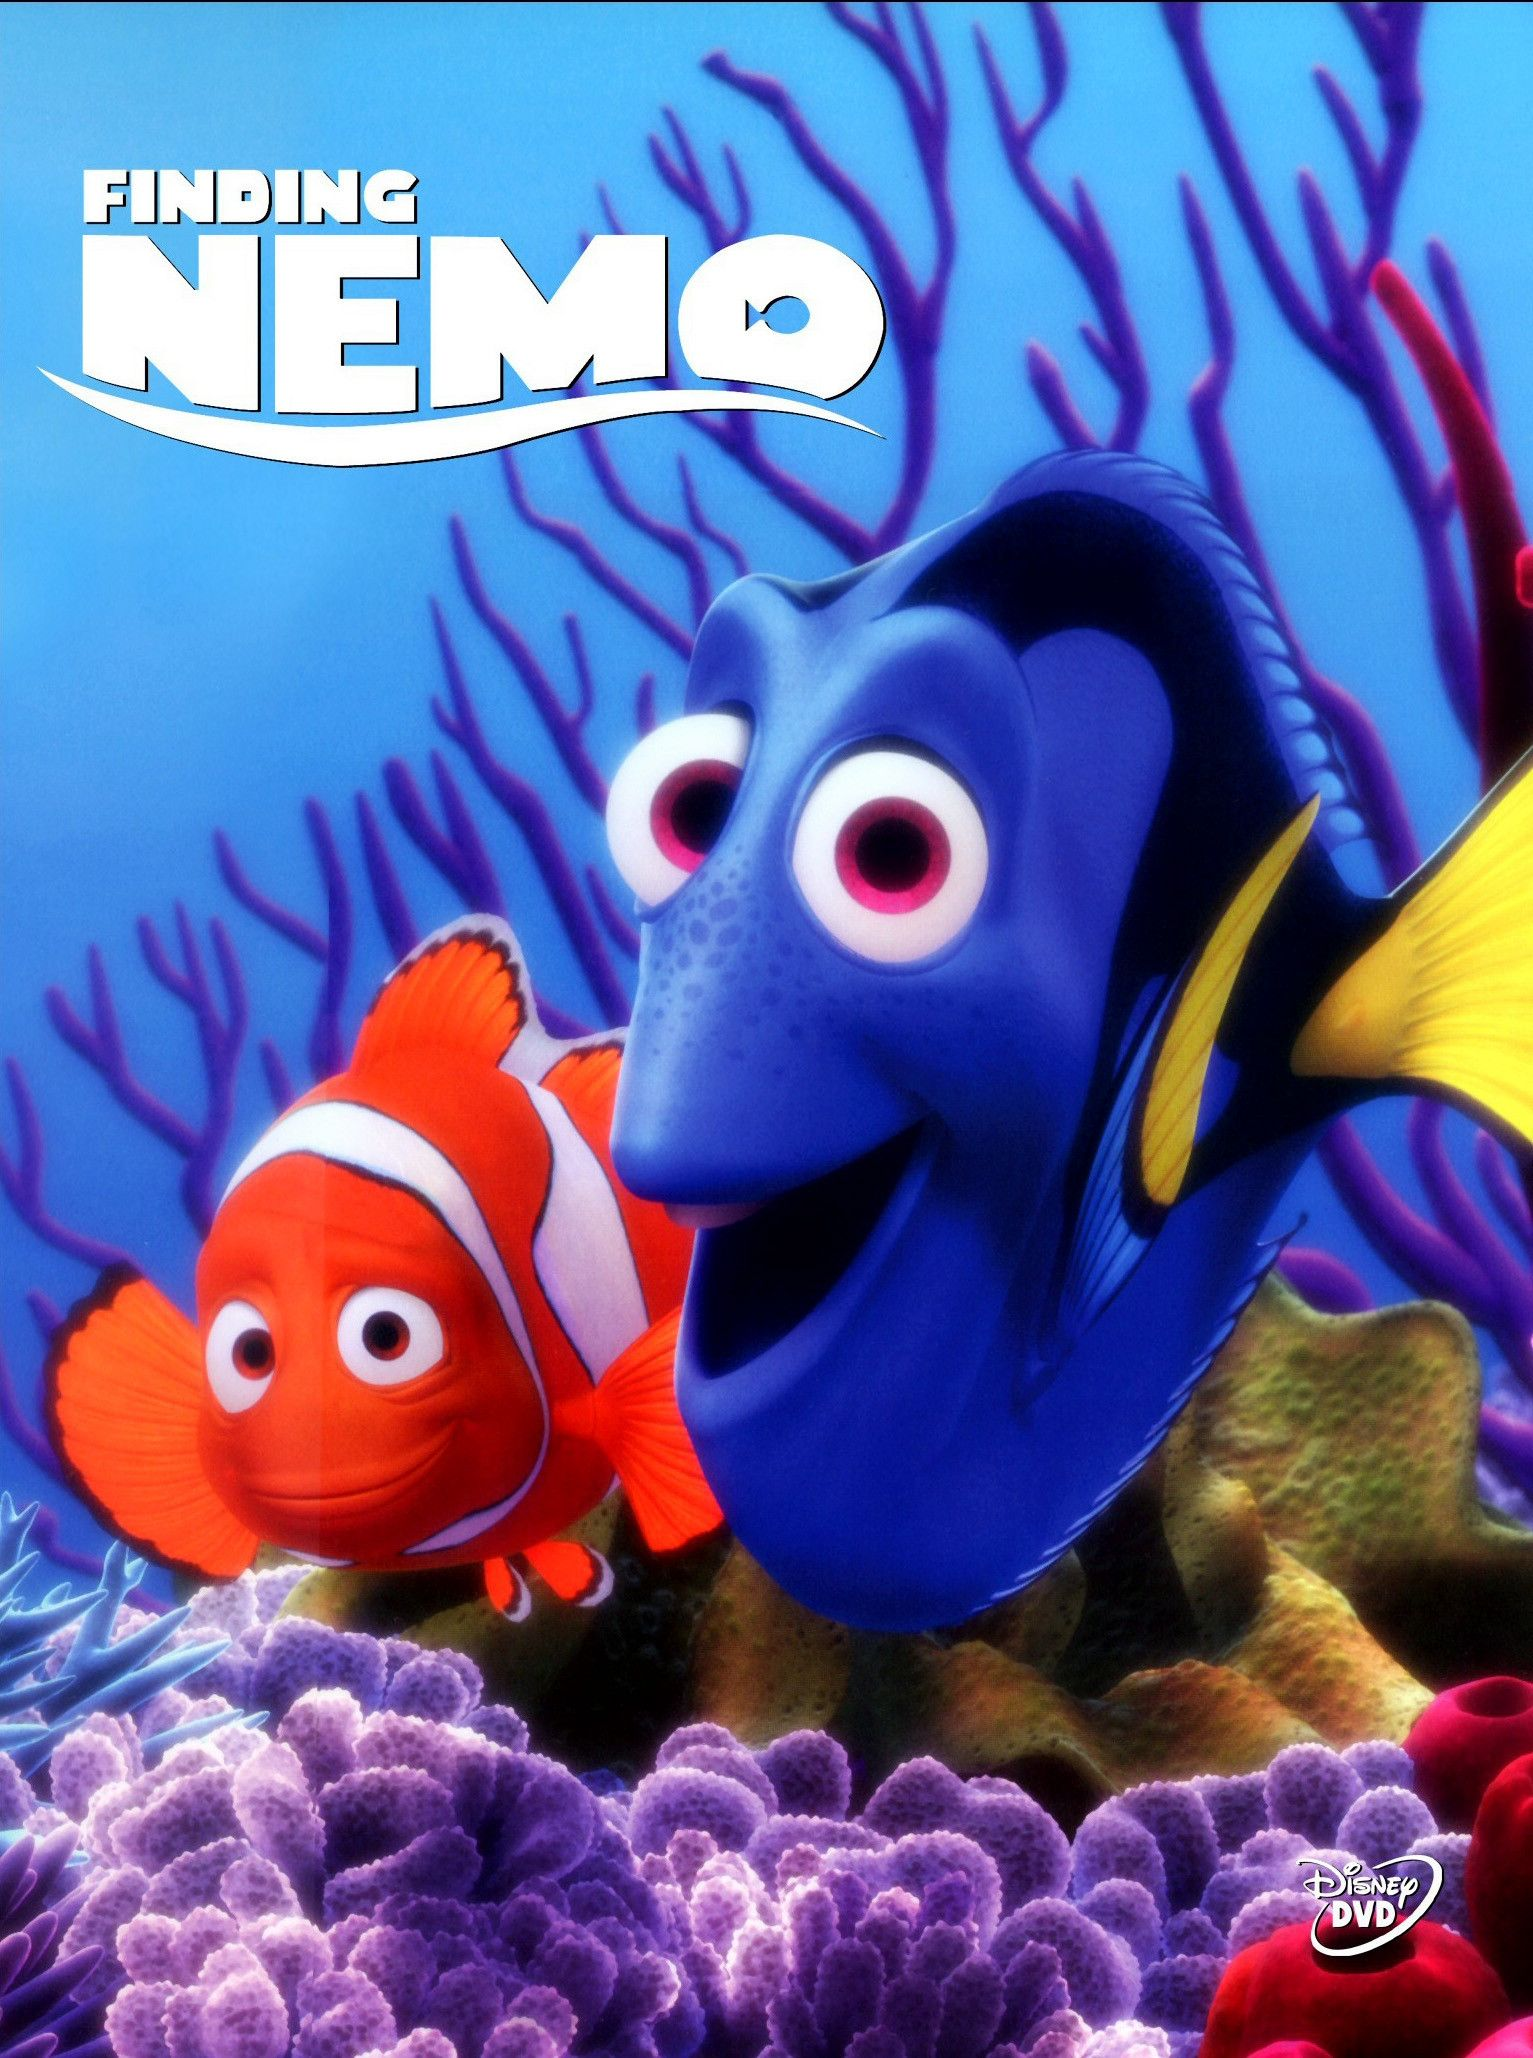 DVR'd this for my daughter...decided to watch one day...I ...  Walt Disney Pictures Presents A Pixar Animation Studios Film Finding Nemo